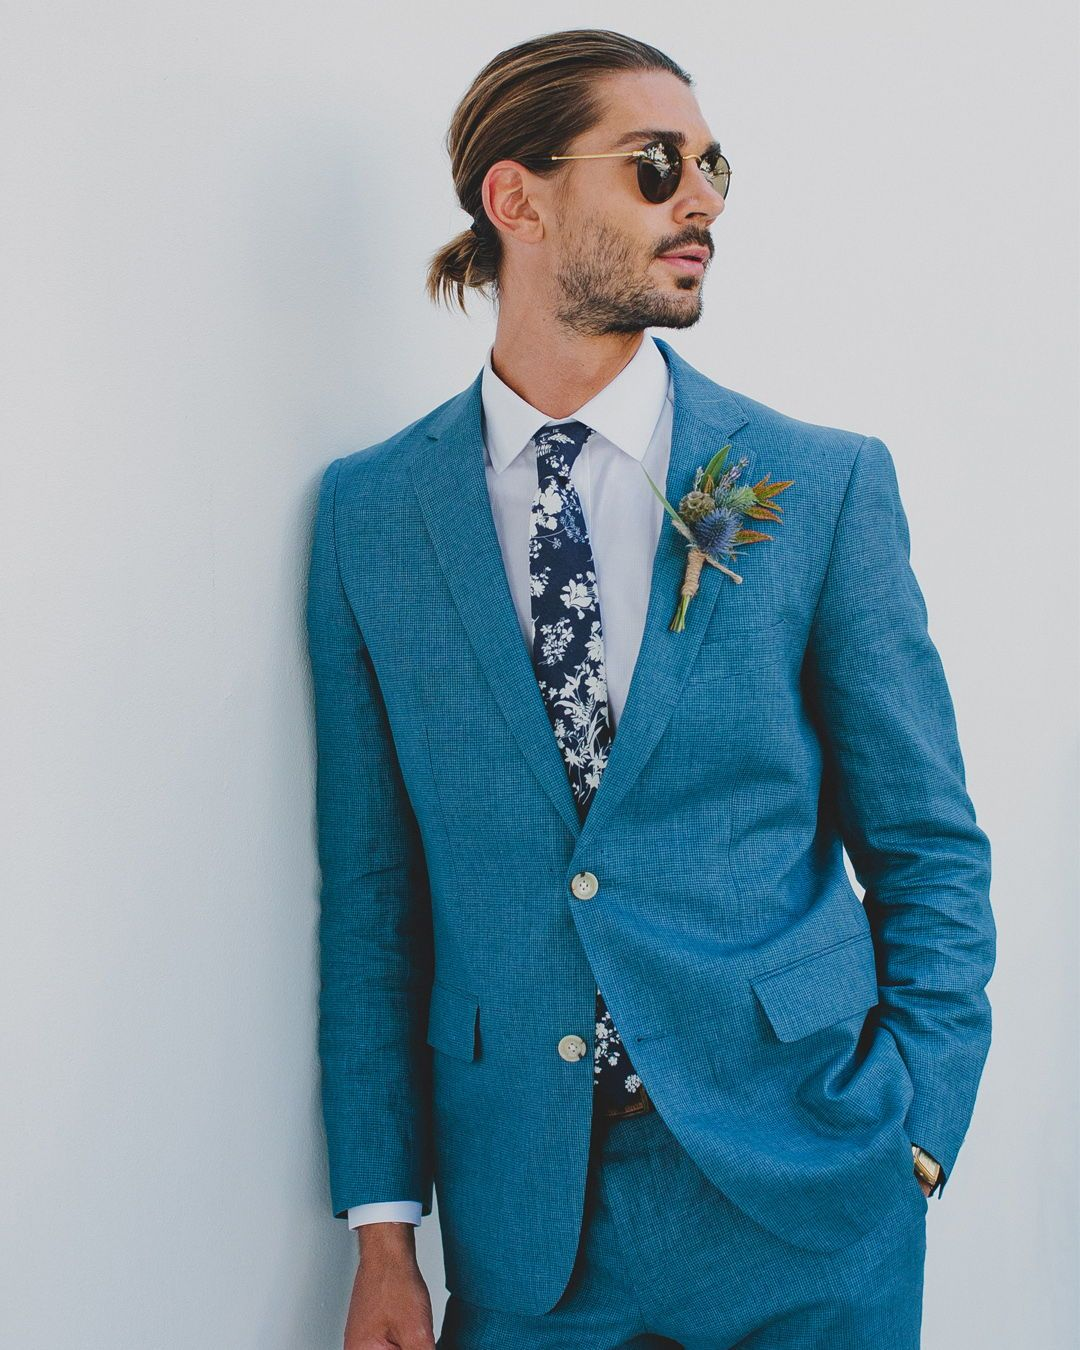 For the groom blue suit floral blue tie hipster | FOR THE GROOM ...